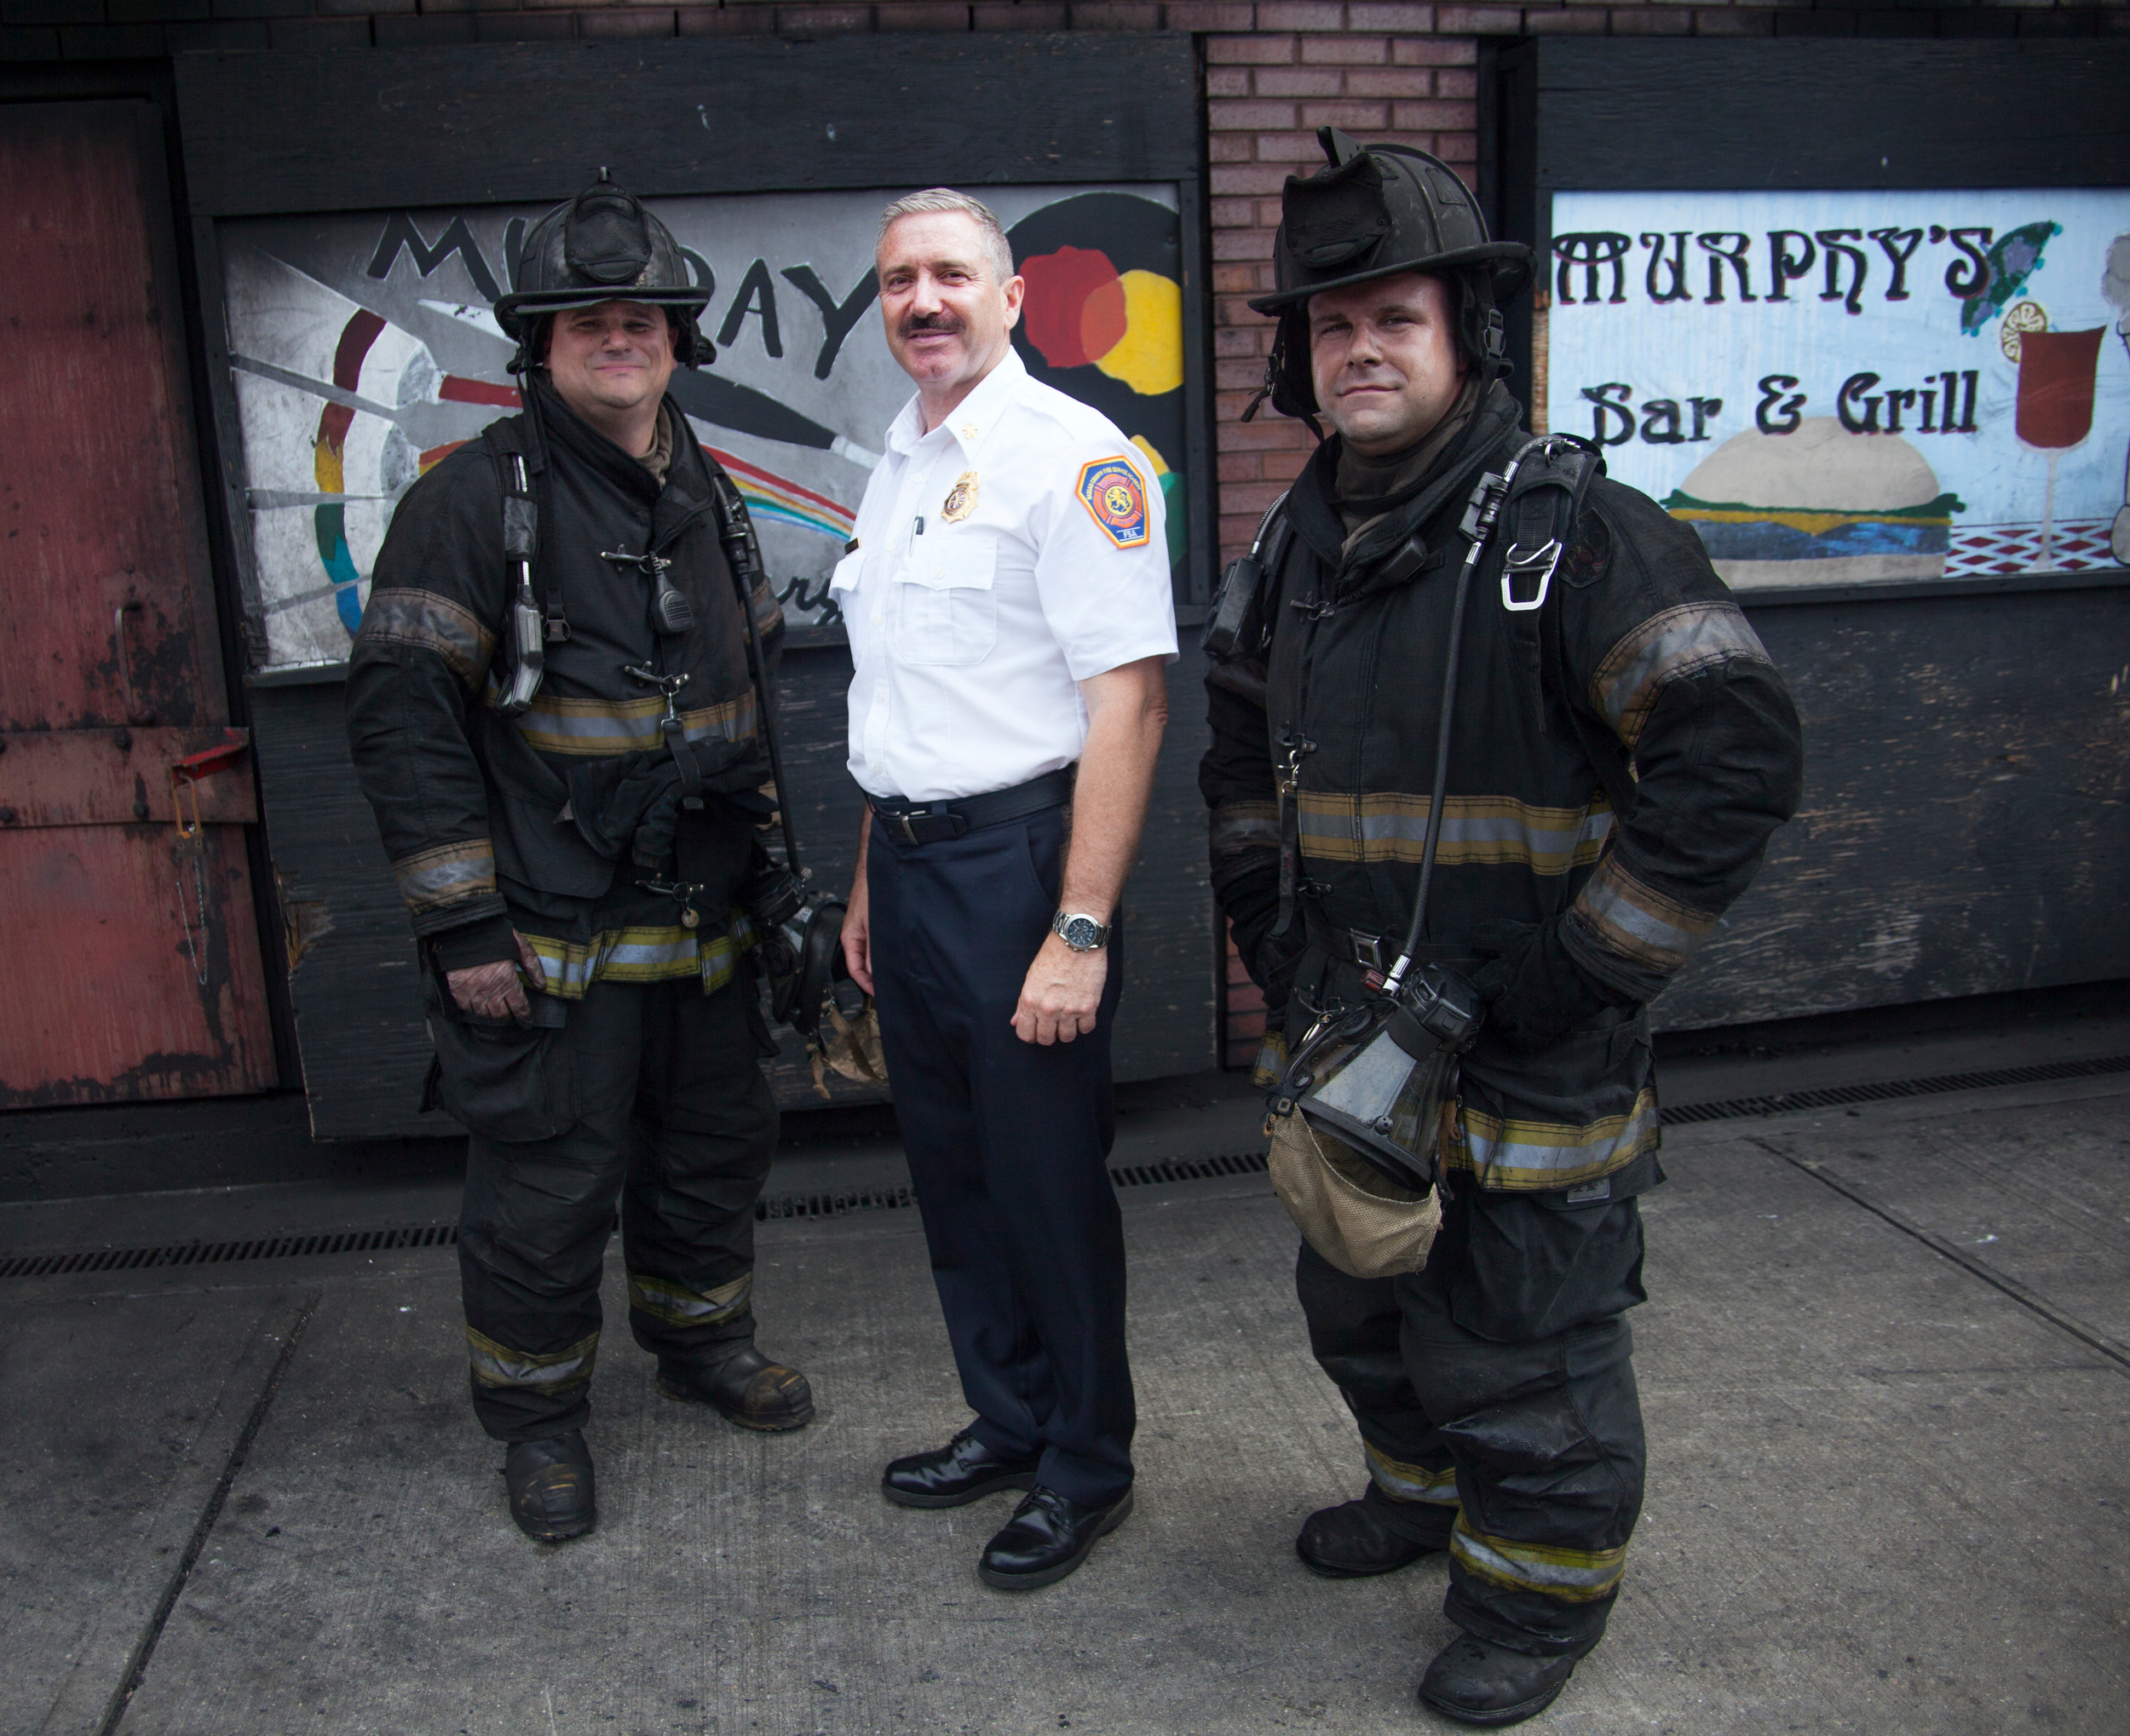 Fire instructors, Chief Gressa of Franklin Square, Chief Hughes and Chief Warner of East Norwich outside the warehouse after the completion of the exercise with the Jr. Firefighters on July 24.